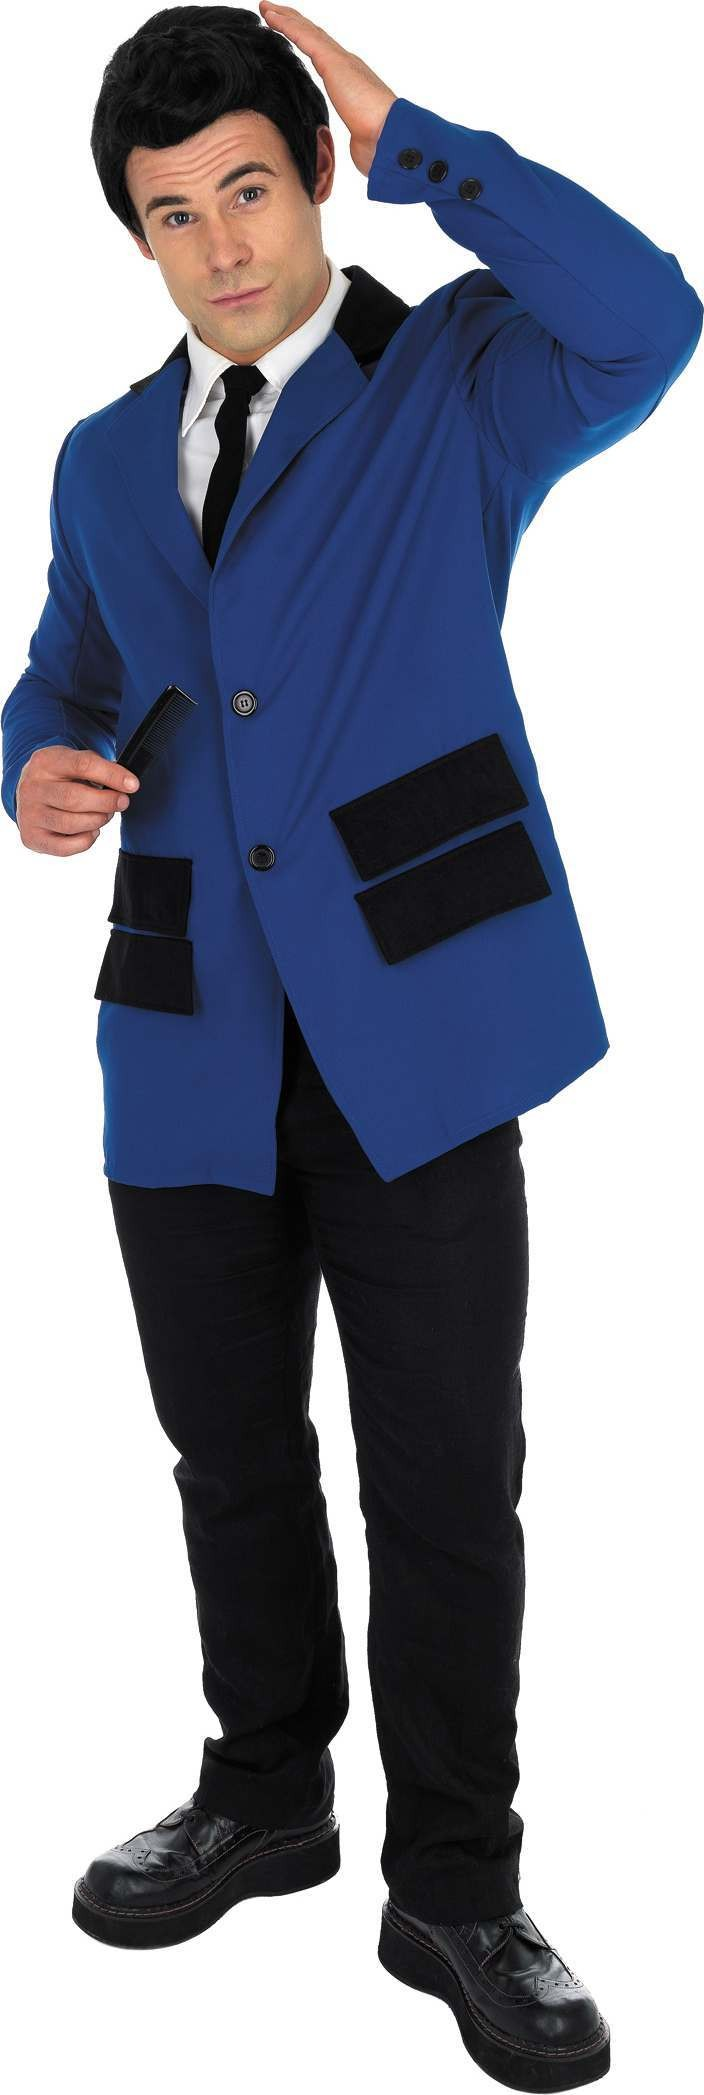 Blue Teddy Boy Fancy Dress Costume